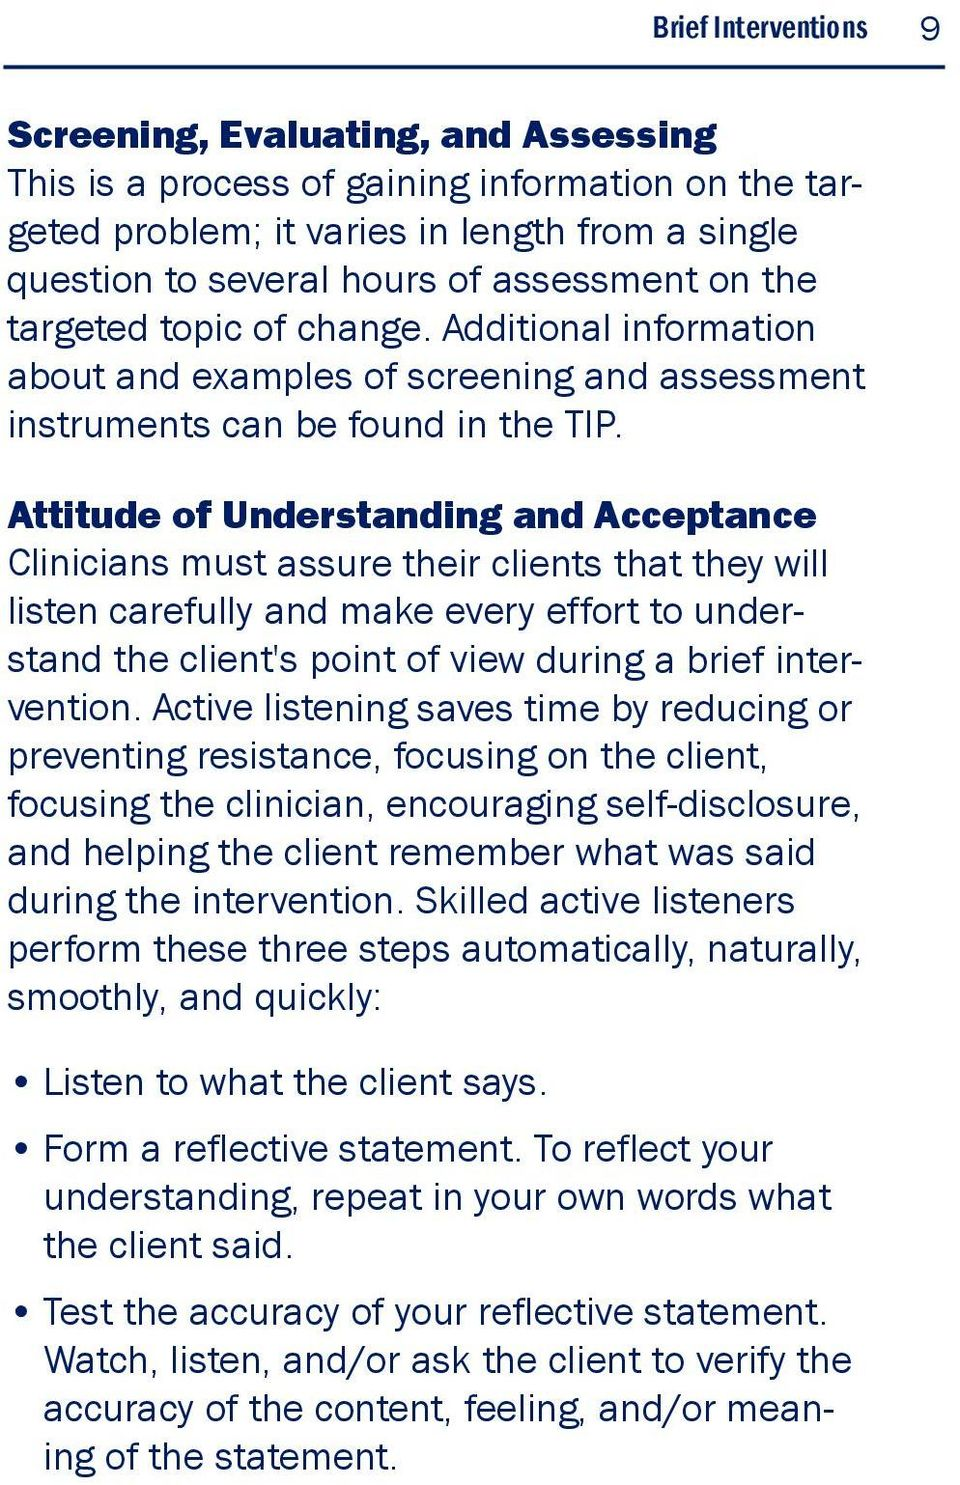 Attitude of Understanding and Acceptance Clinicians must assure their clients that they will listen carefully and make every effort to understand the client's point of view during a brief